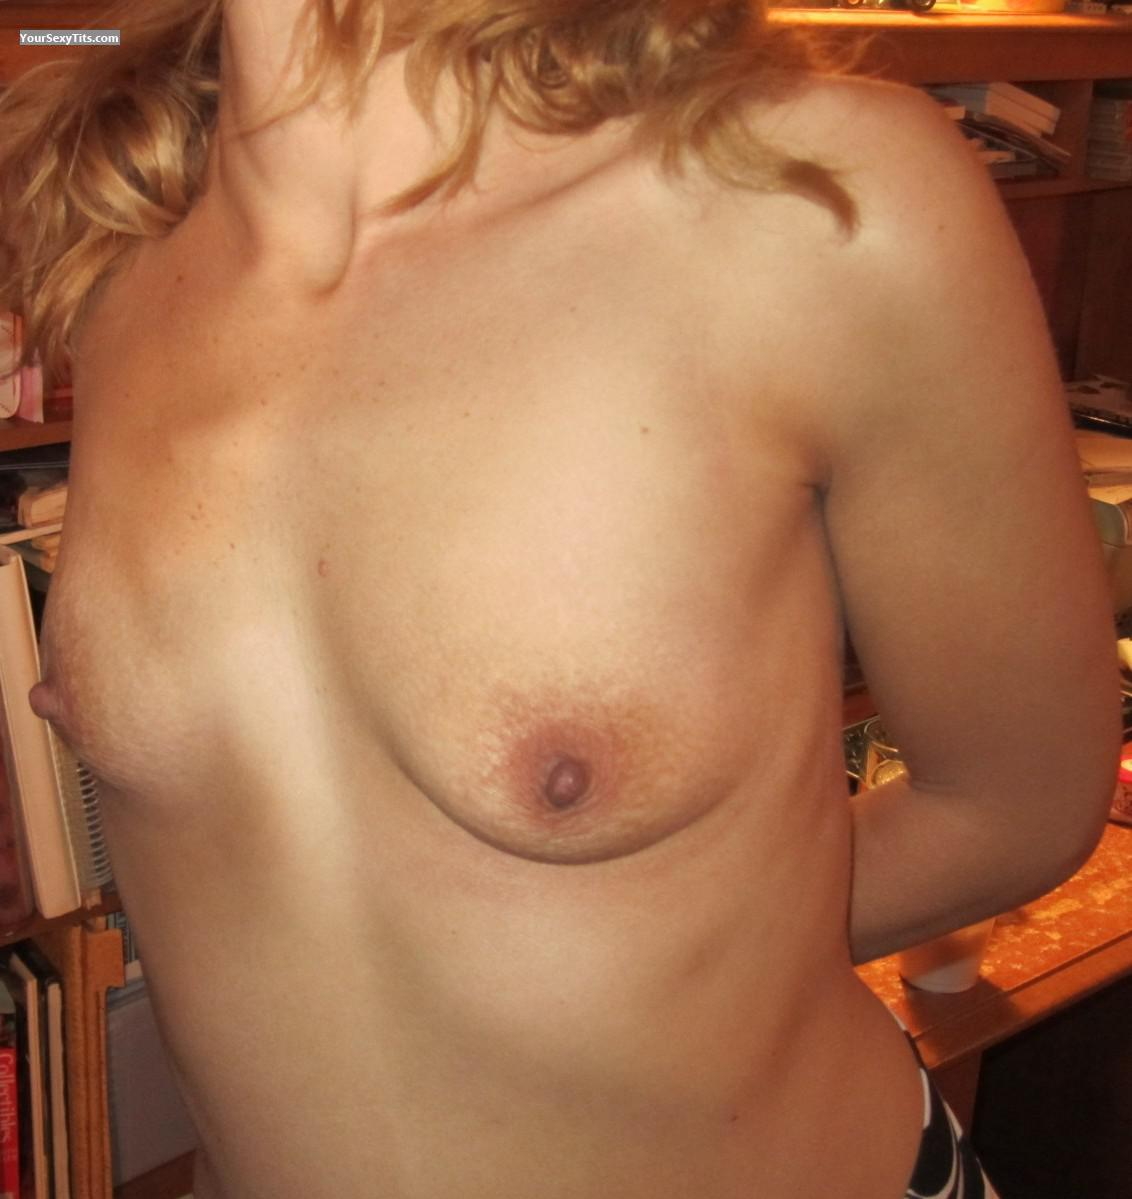 Tit Flash: My Very Small Tits - Crberg from United States